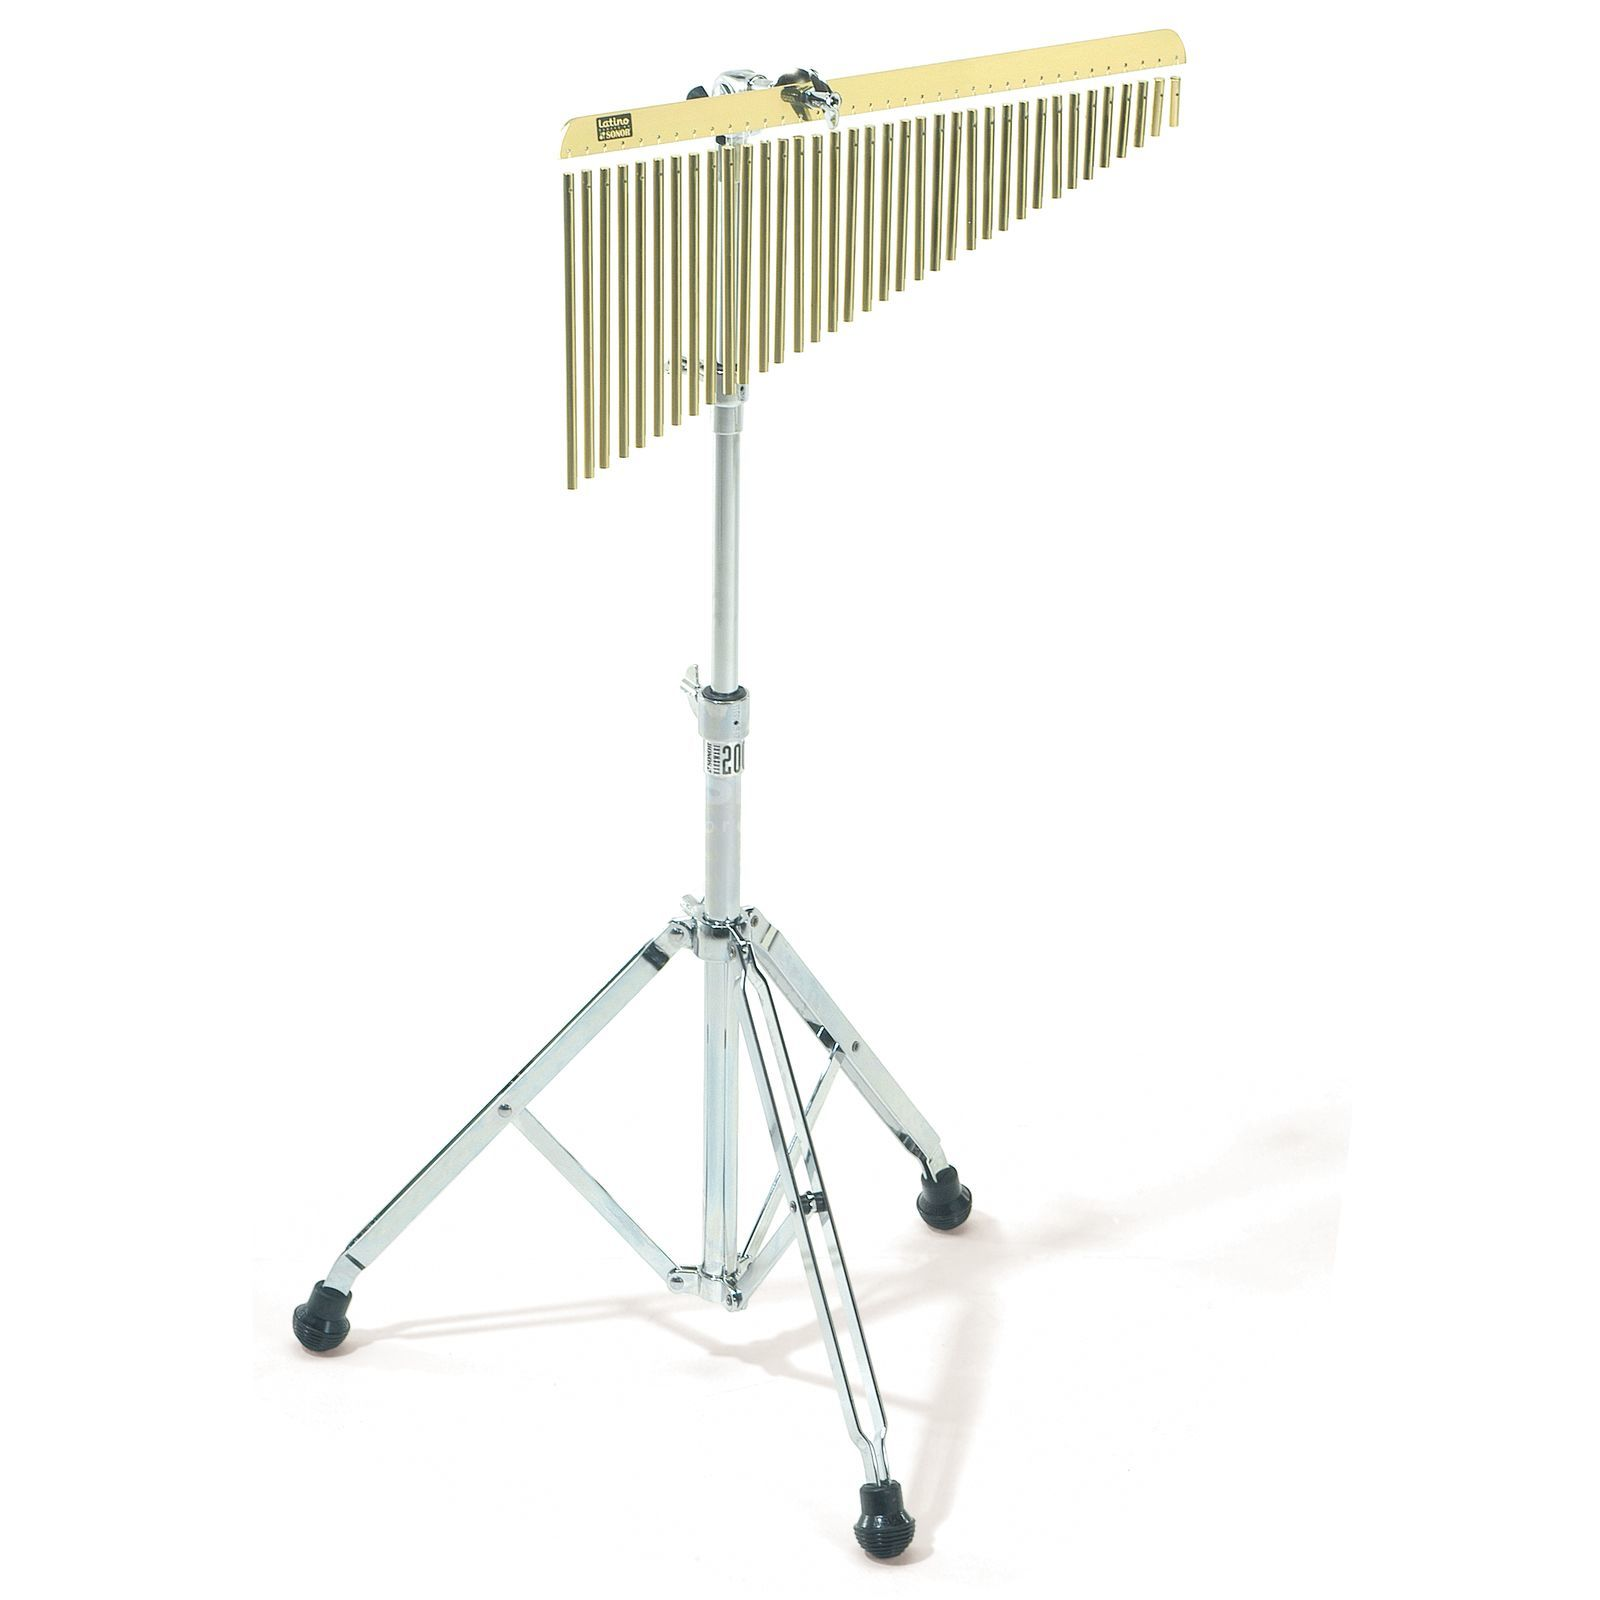 Sonor Solid Bar Chimes L 2639, pied incl. Image du produit